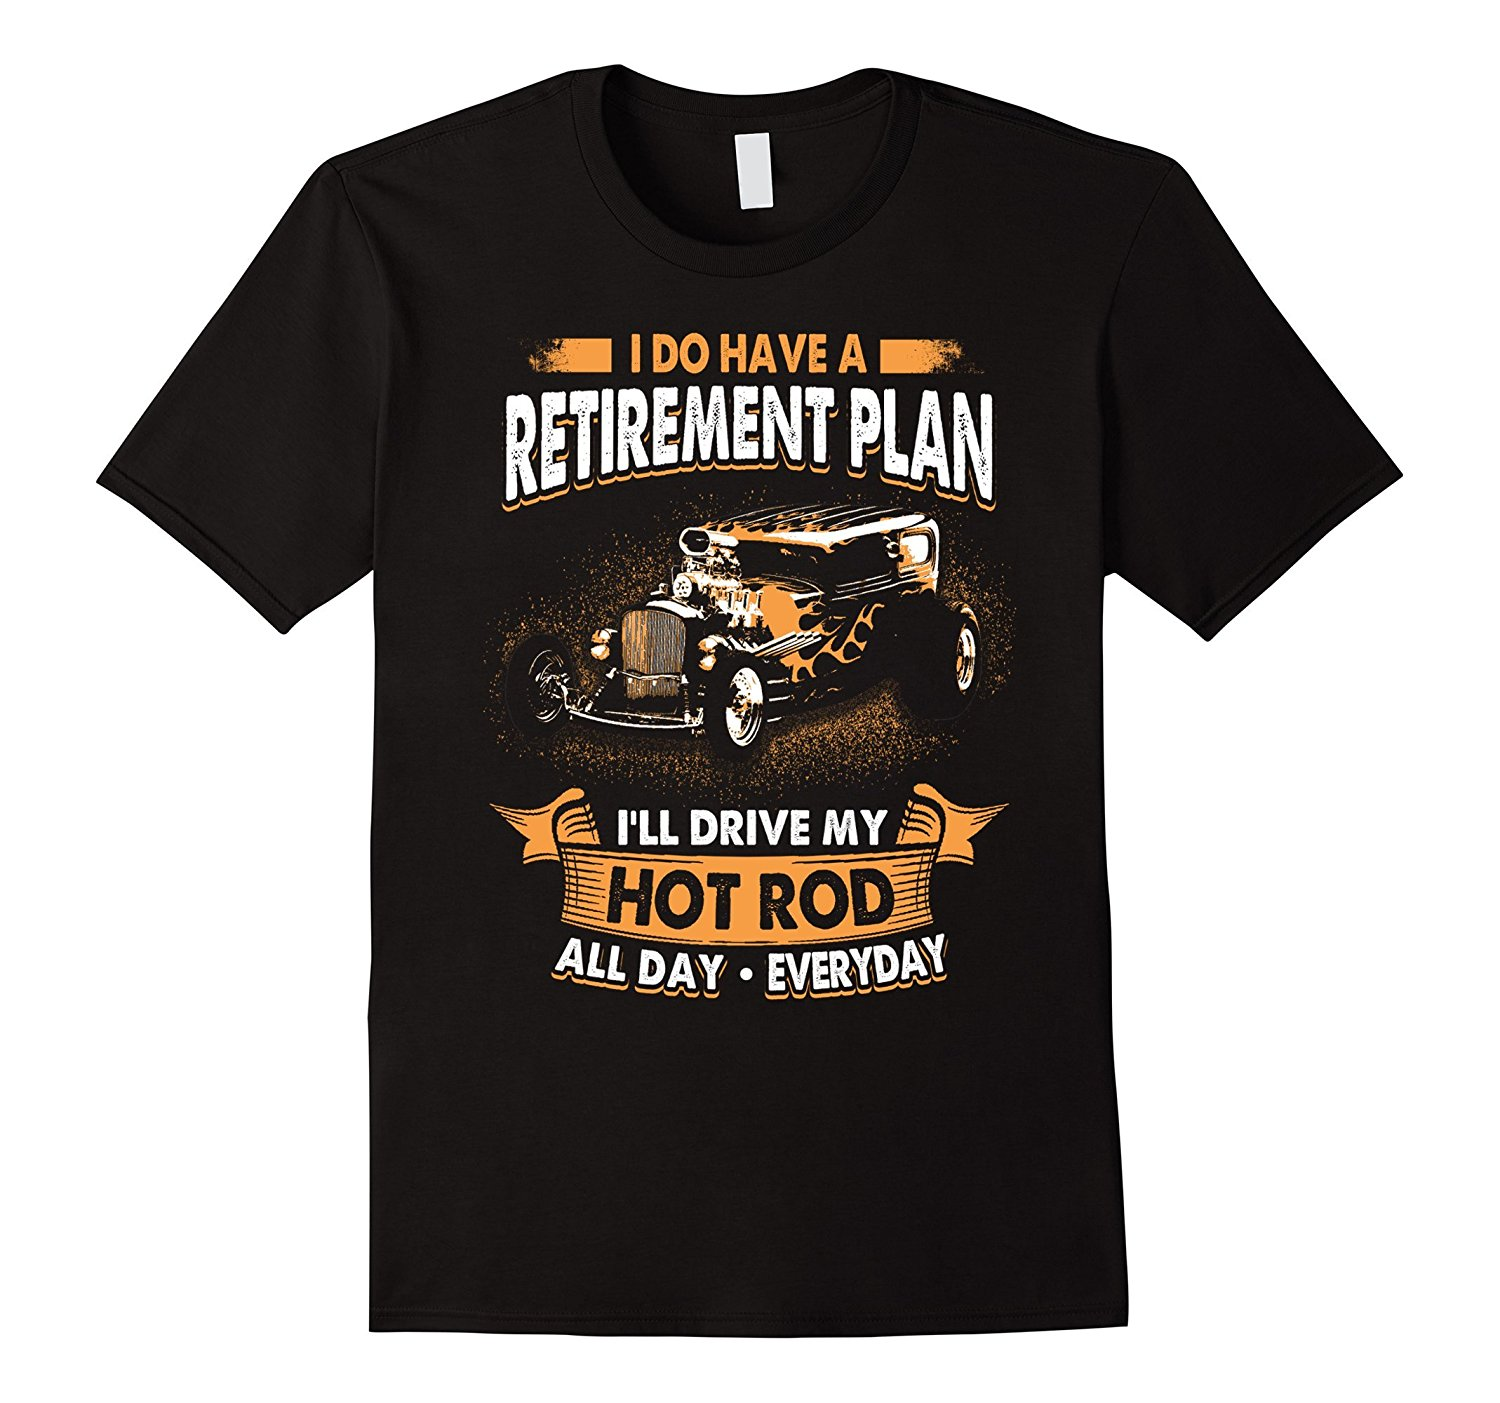 2019 New Brand High Quality for Man Better Retirement Plan Drive Hot Rod Everyday T-shirt Short Sleeve Tee Shirts image